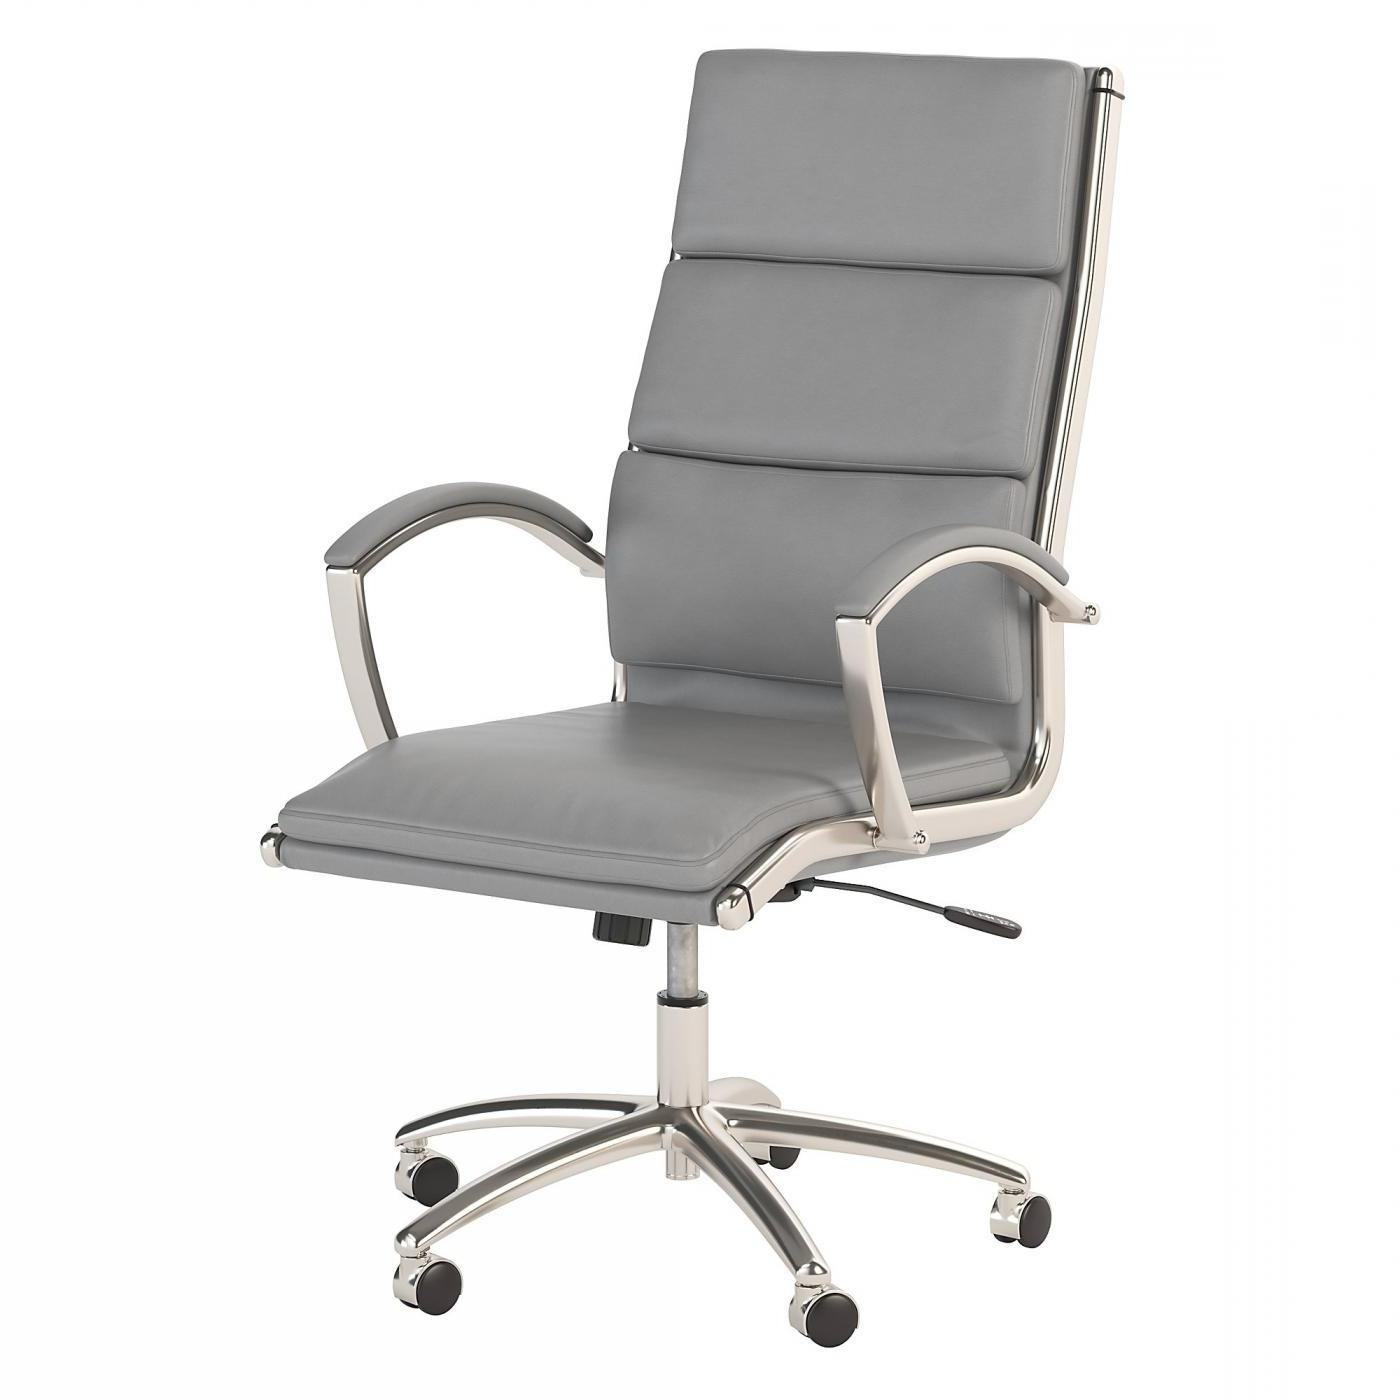 <font color=#c60><b>BUSH BUSINESS FURNITURE MODELO HIGH BACK LEATHER EXECUTIVE OFFICE CHAIR #EH-CH1701LGL-03. FREE SHIPPING:</font></b> </font></b>